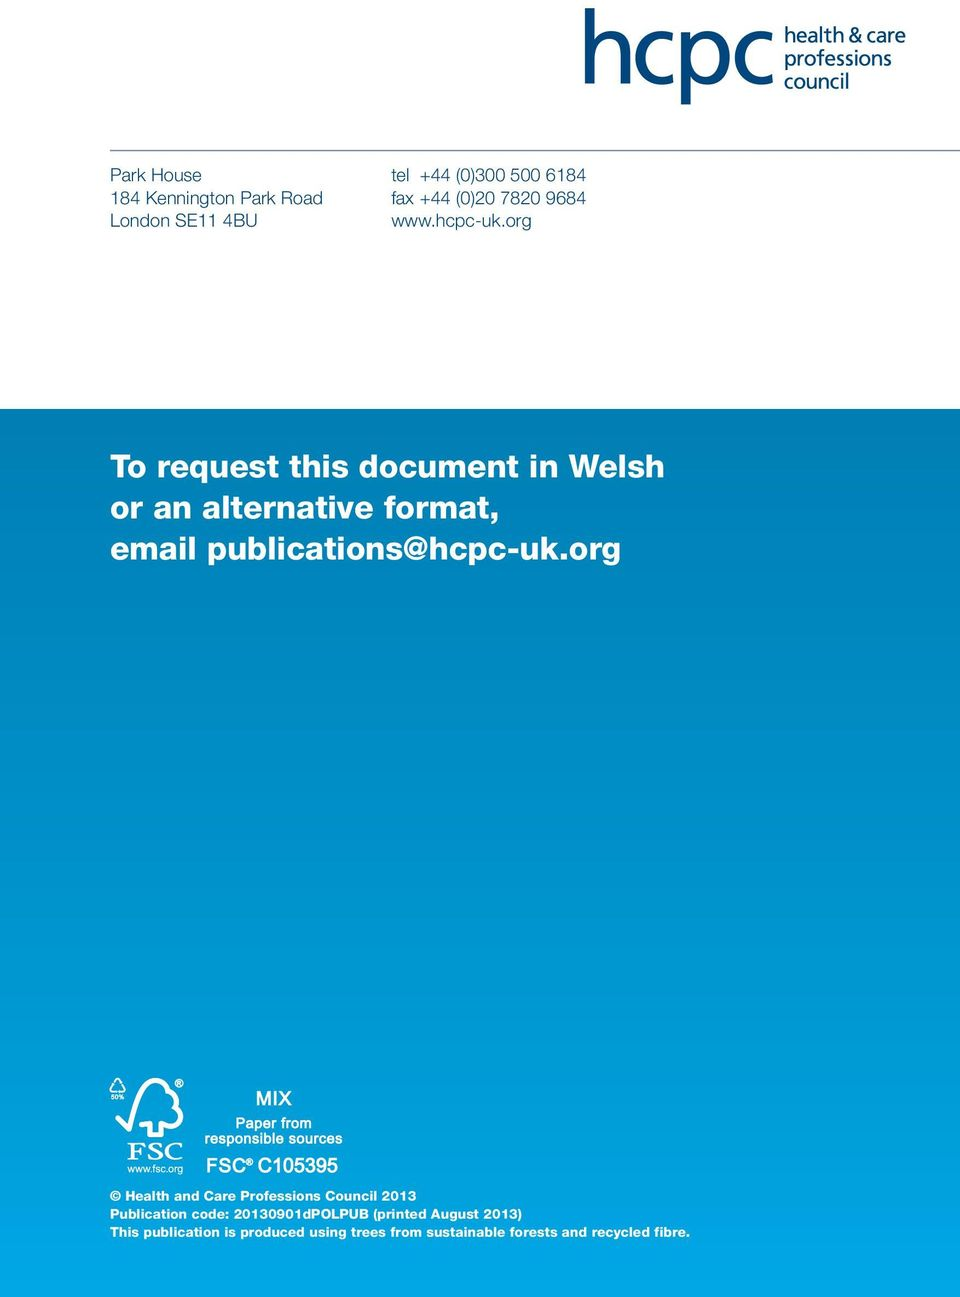 org To request this document in Welsh or an alternative format, email publications@hcpc-uk.